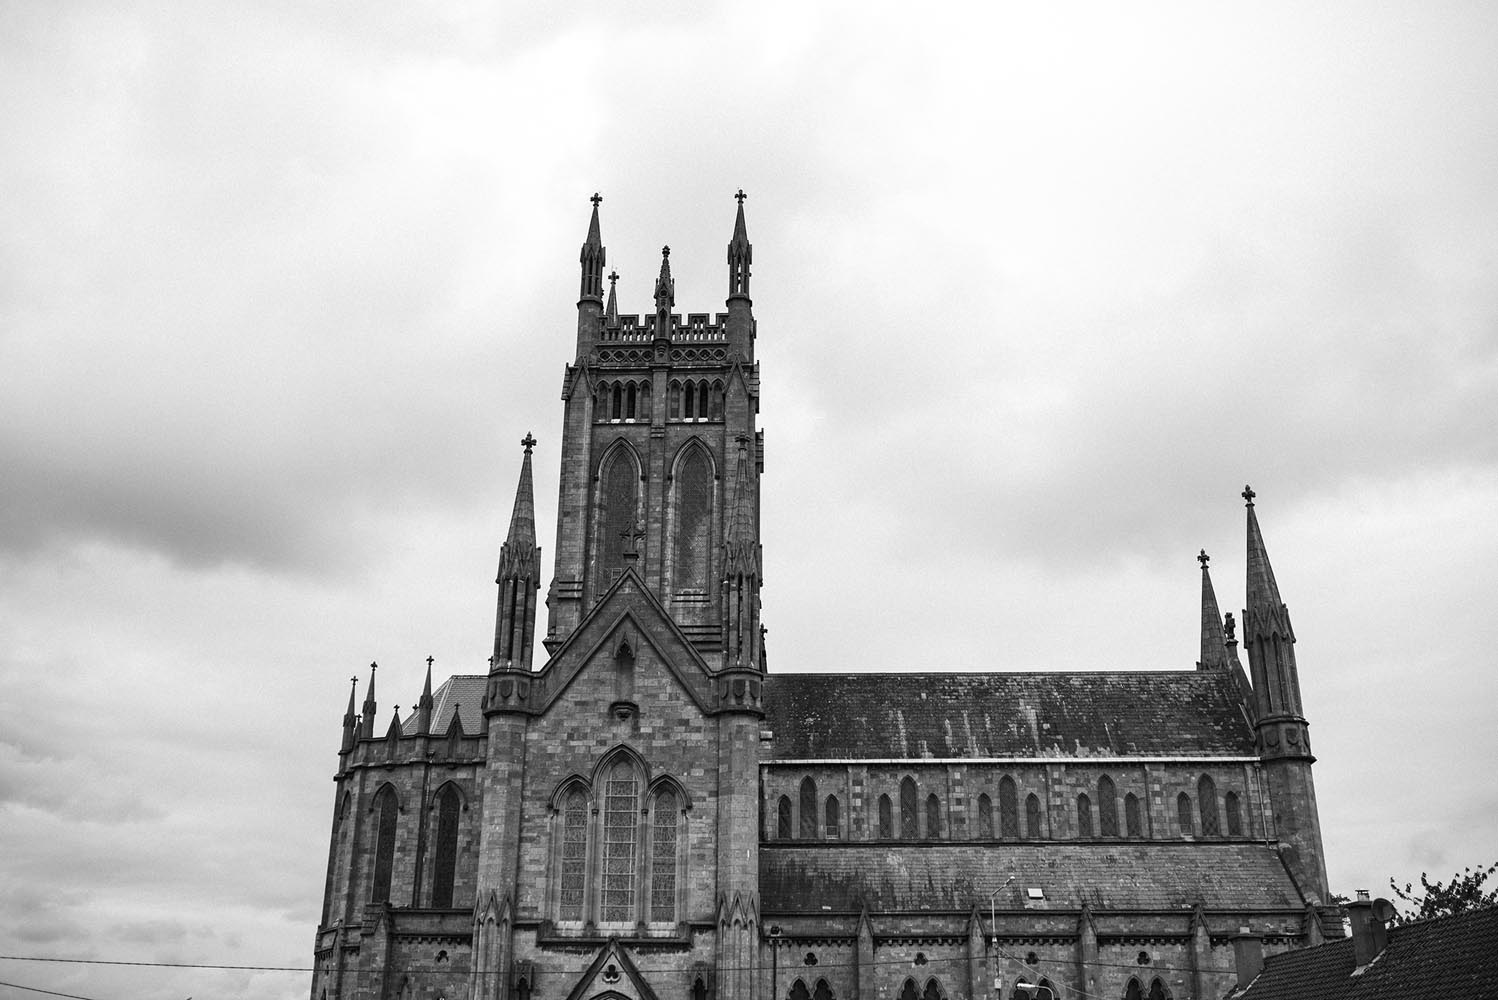 St Mary's Cathedral in Kilkenny city